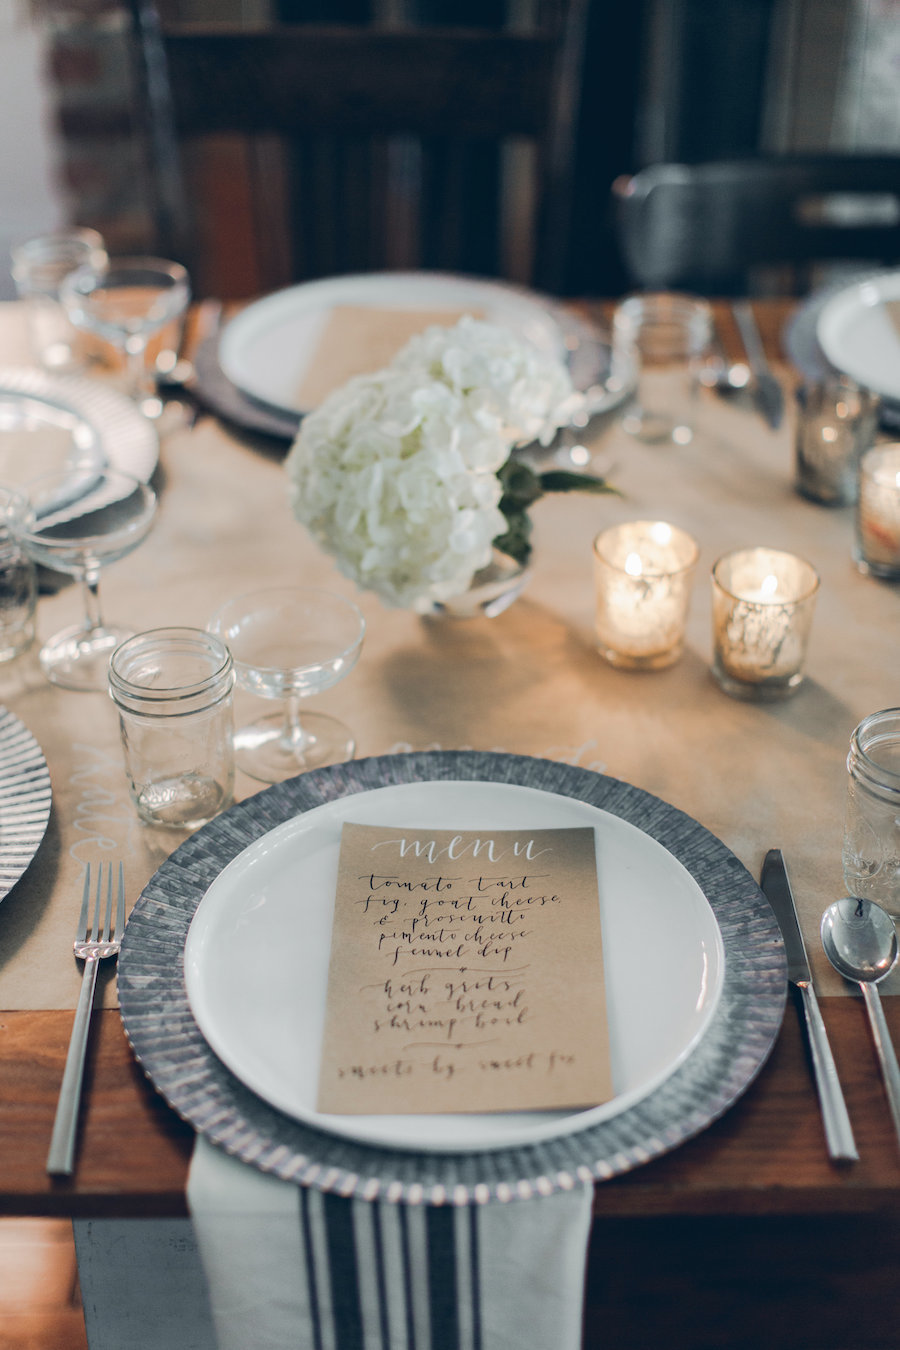 Another place setting shot.